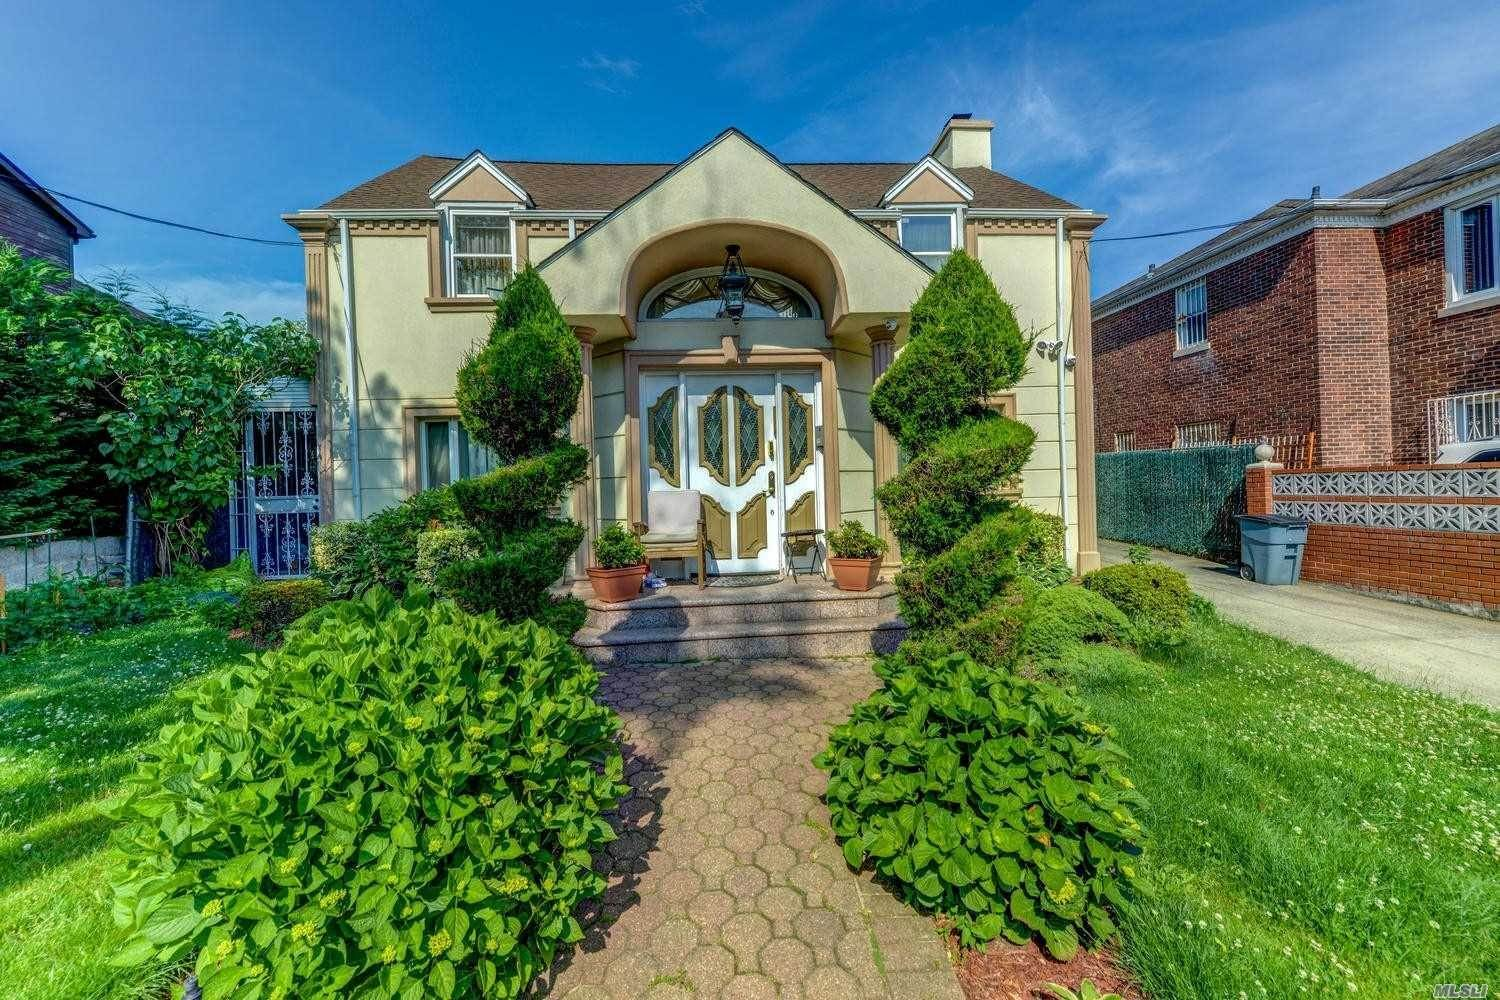 Residential for Sale at 68-65 110 St, Forest Hills, NY 11375 Forest Hills, New York 11375 United States